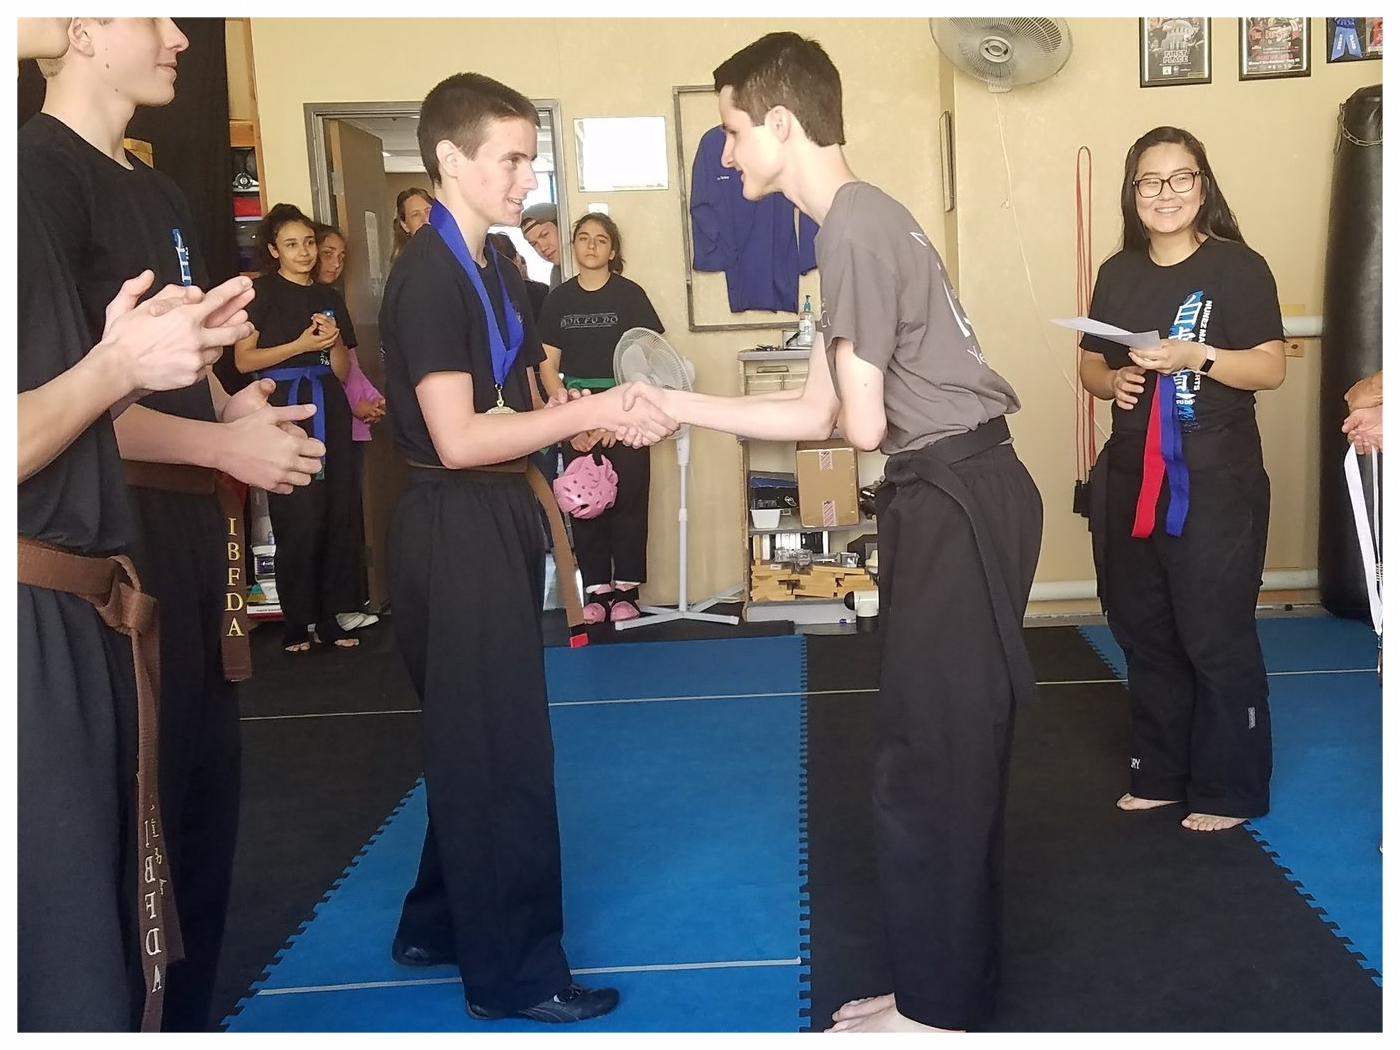 William Solovei receives a medal after competing at the Nunez Martial Arts Academy Anniversary Tournament, 2017